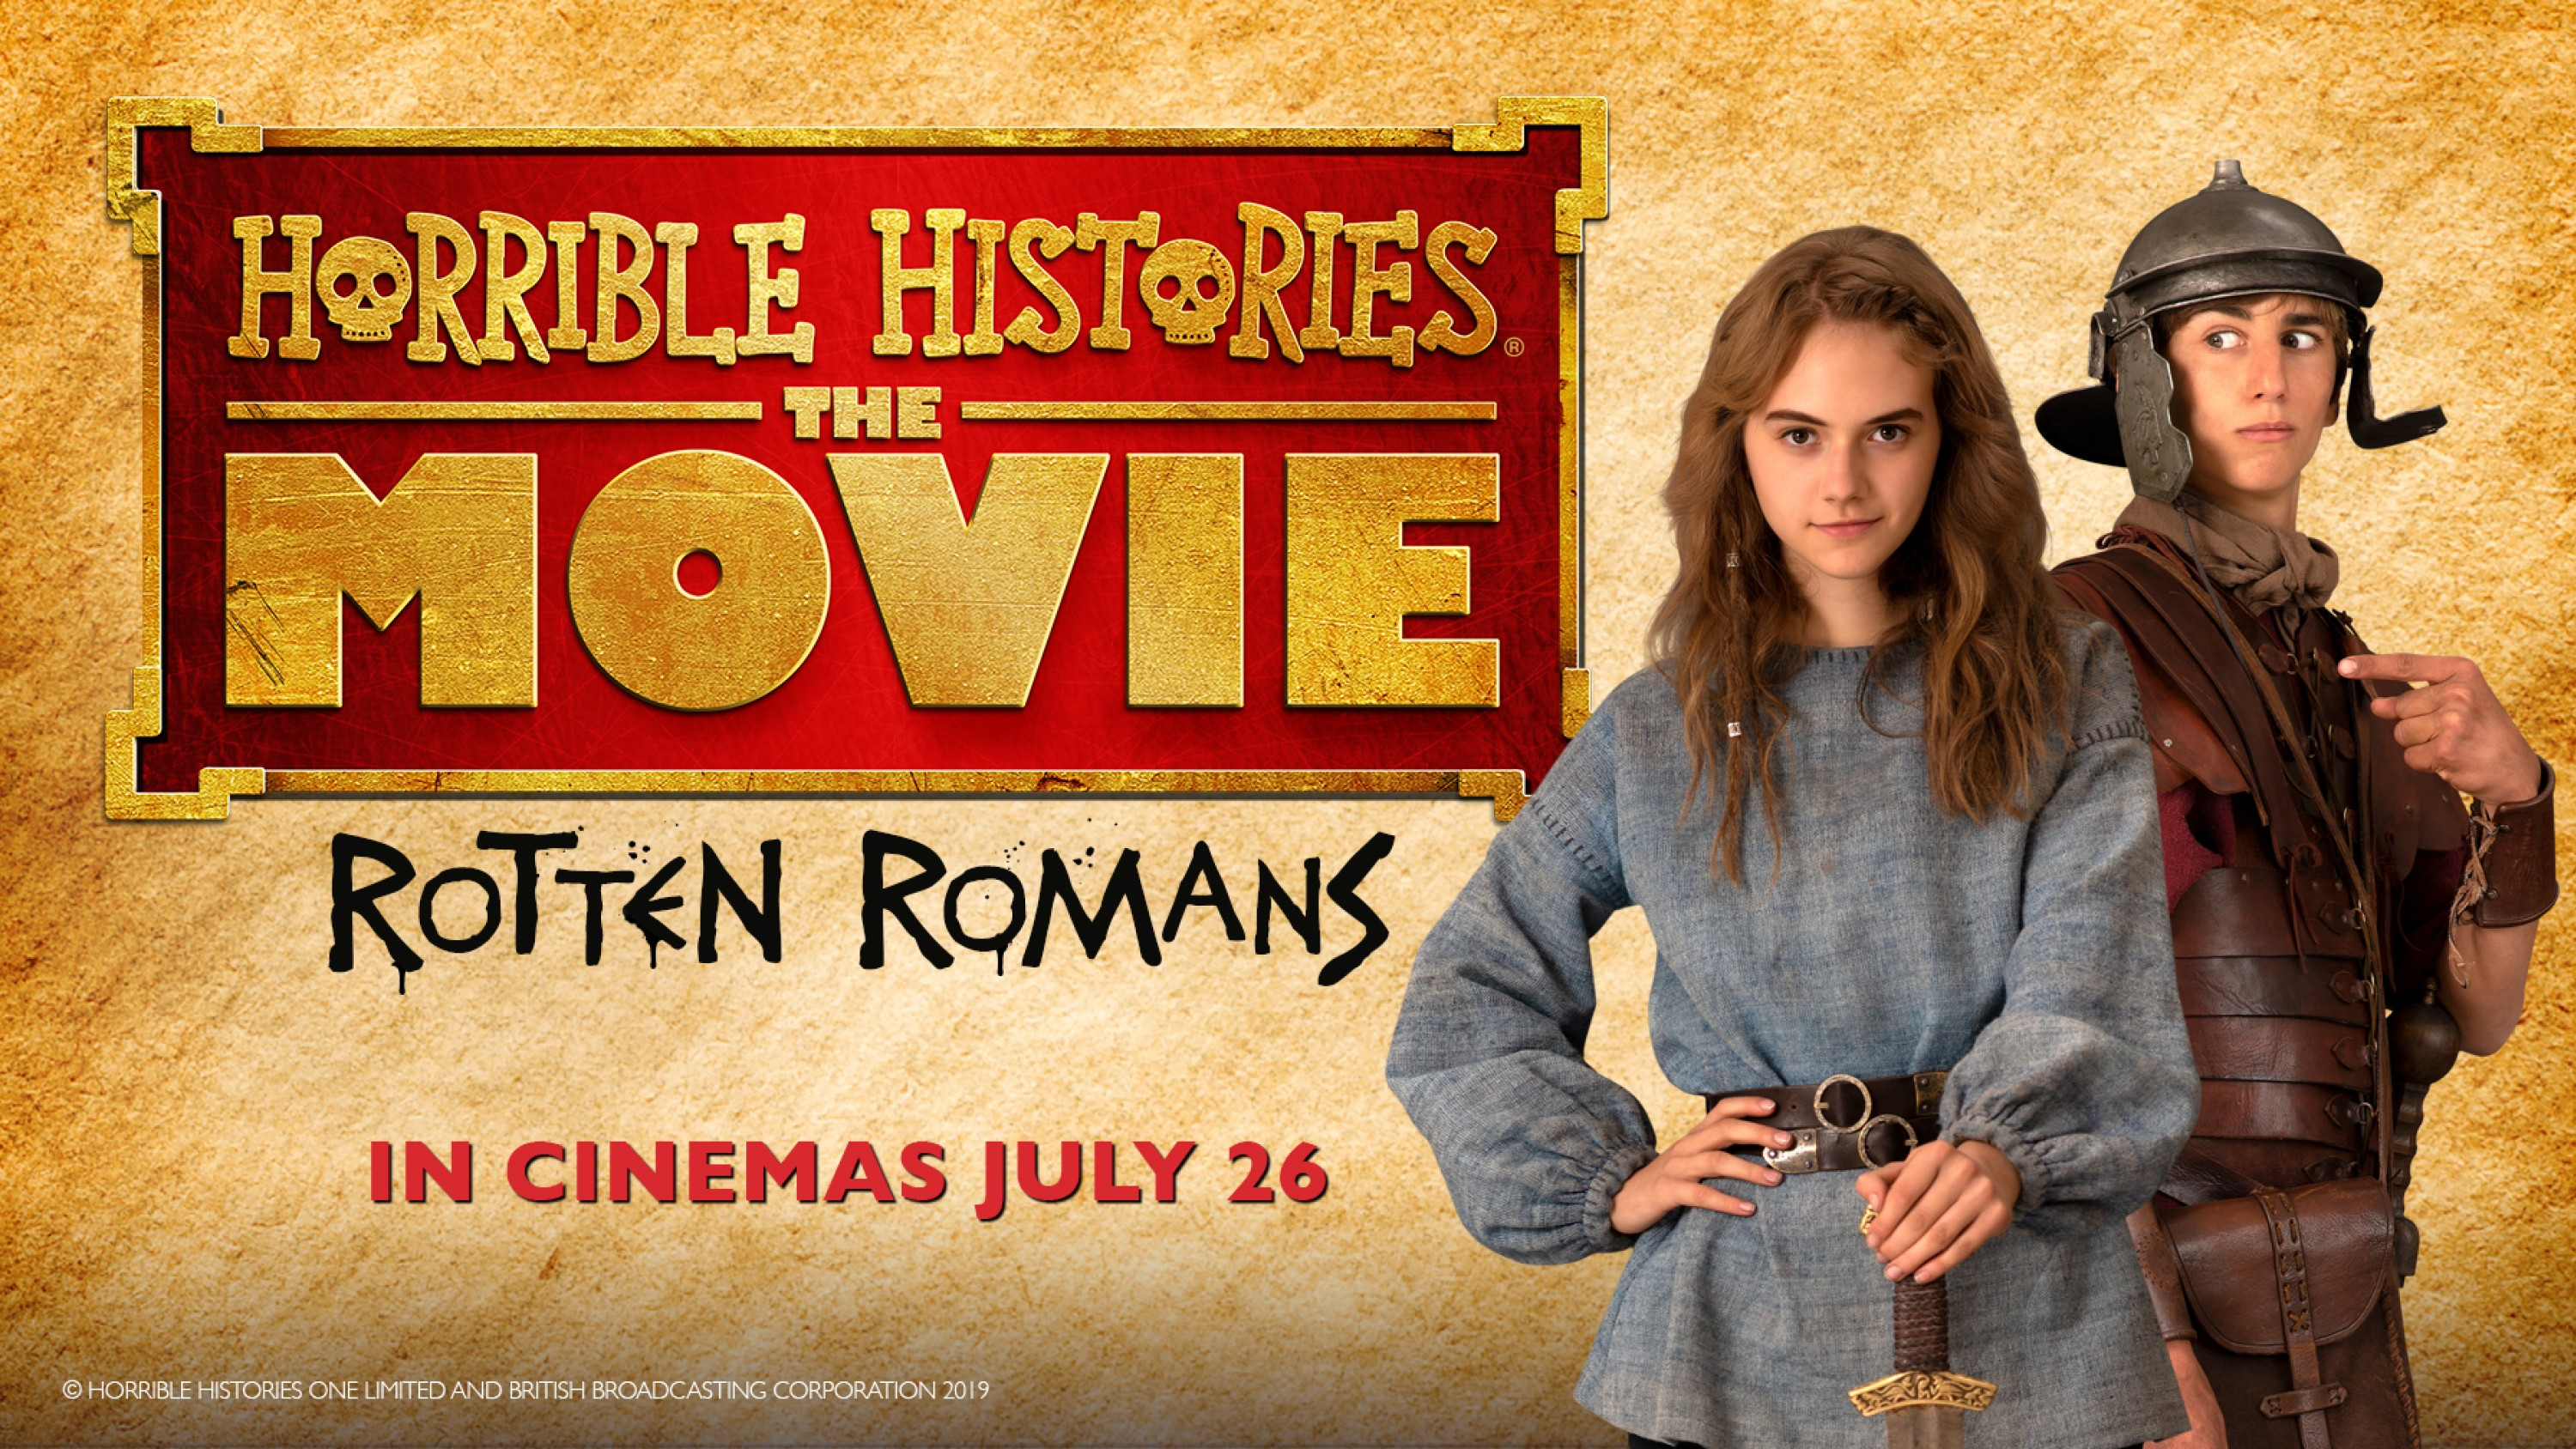 Horrible Histories: The Movie - Rotten Romans resource image